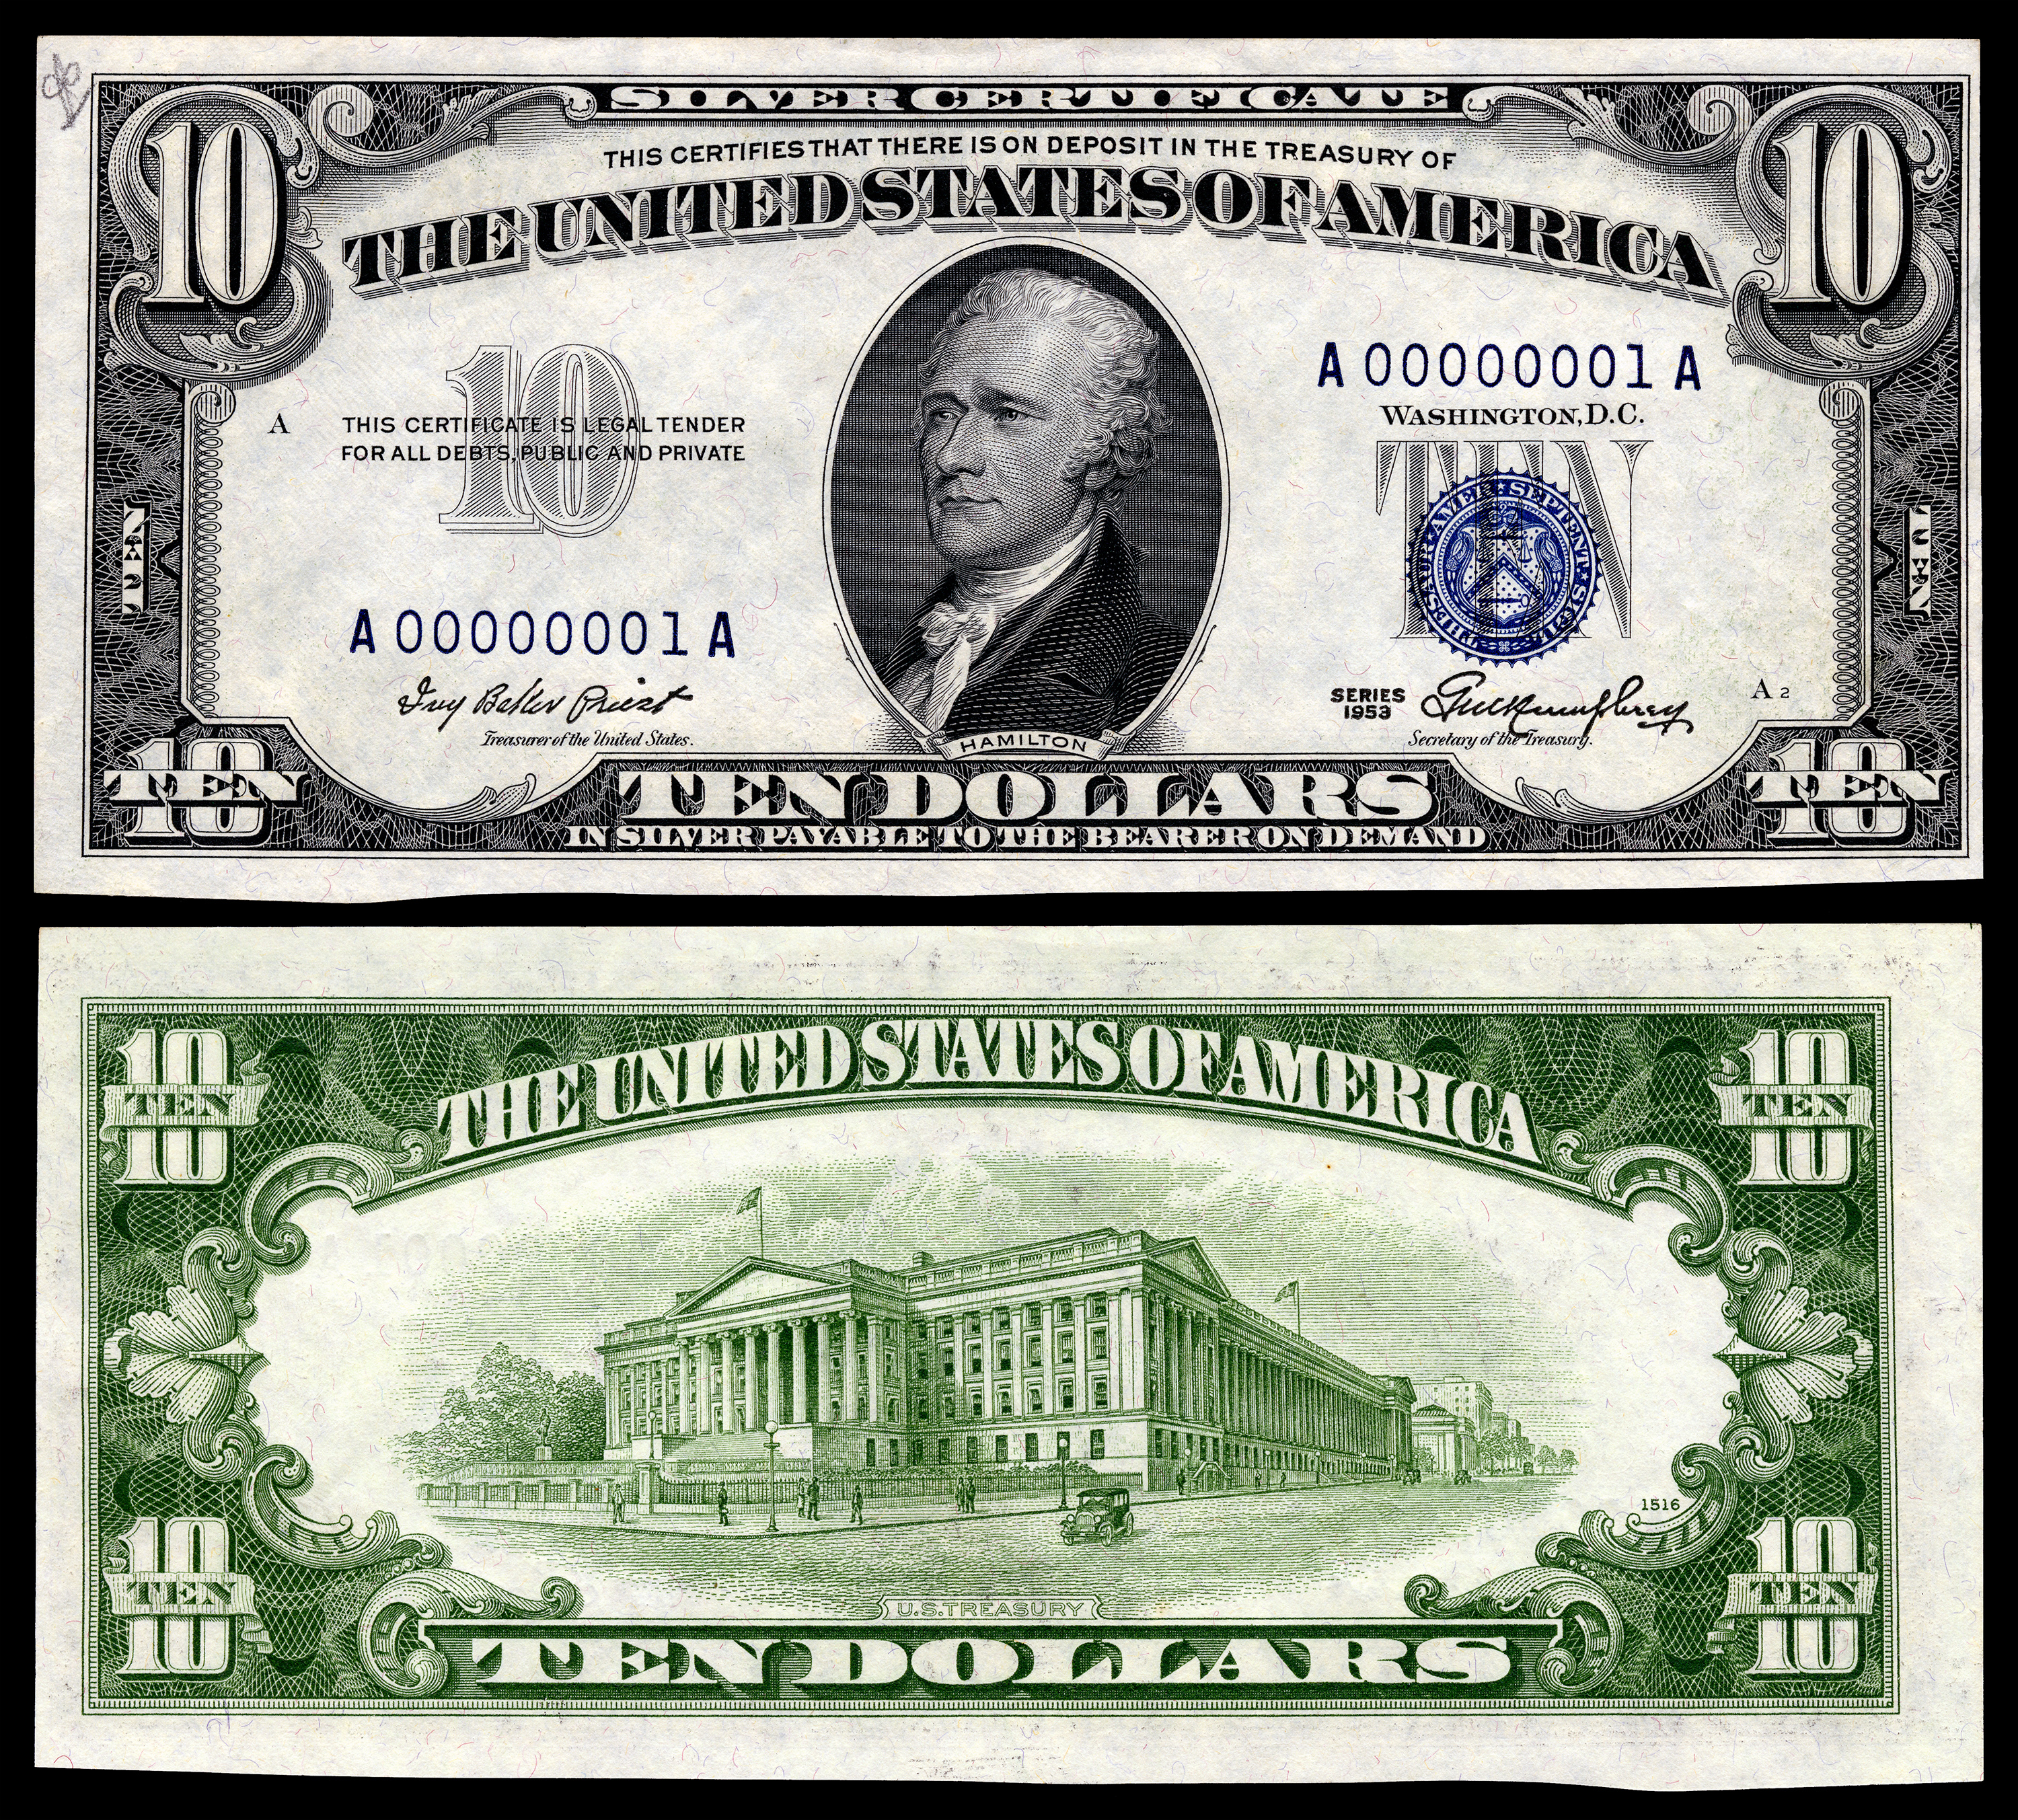 I Found A Ten Dollar Bill From 1950 The Flag Above The